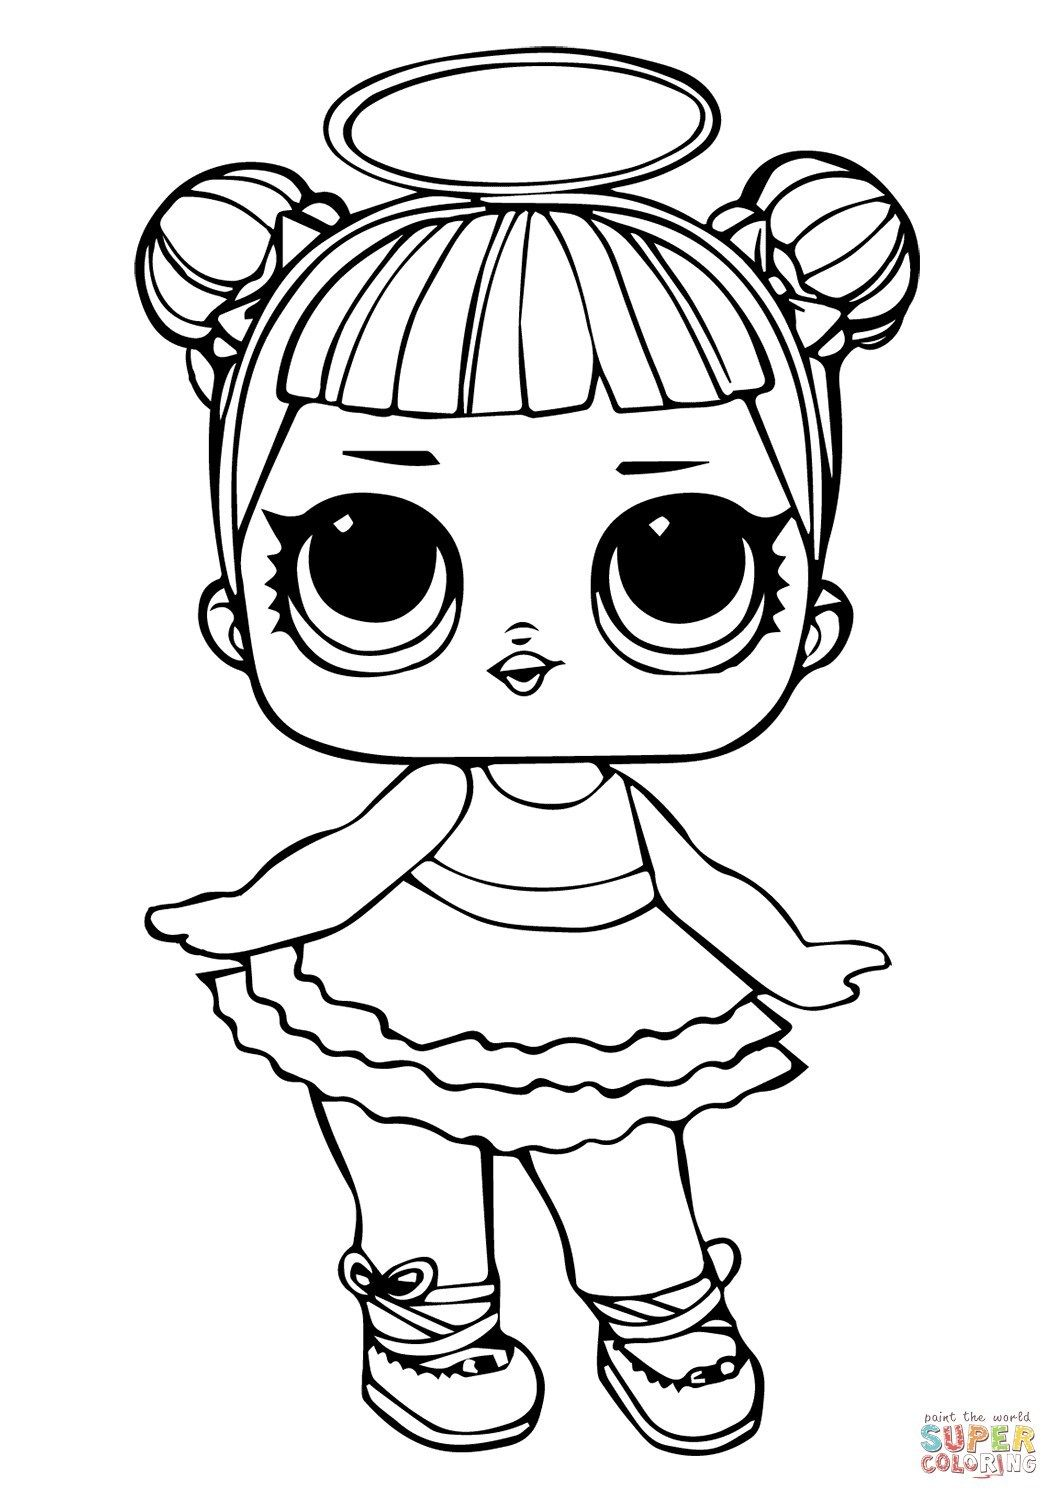 27 Wonderful Photo Of Lol Coloring Pages Albanysinsanity Com Super Coloring Pages Princess Coloring Pages Lol Dolls